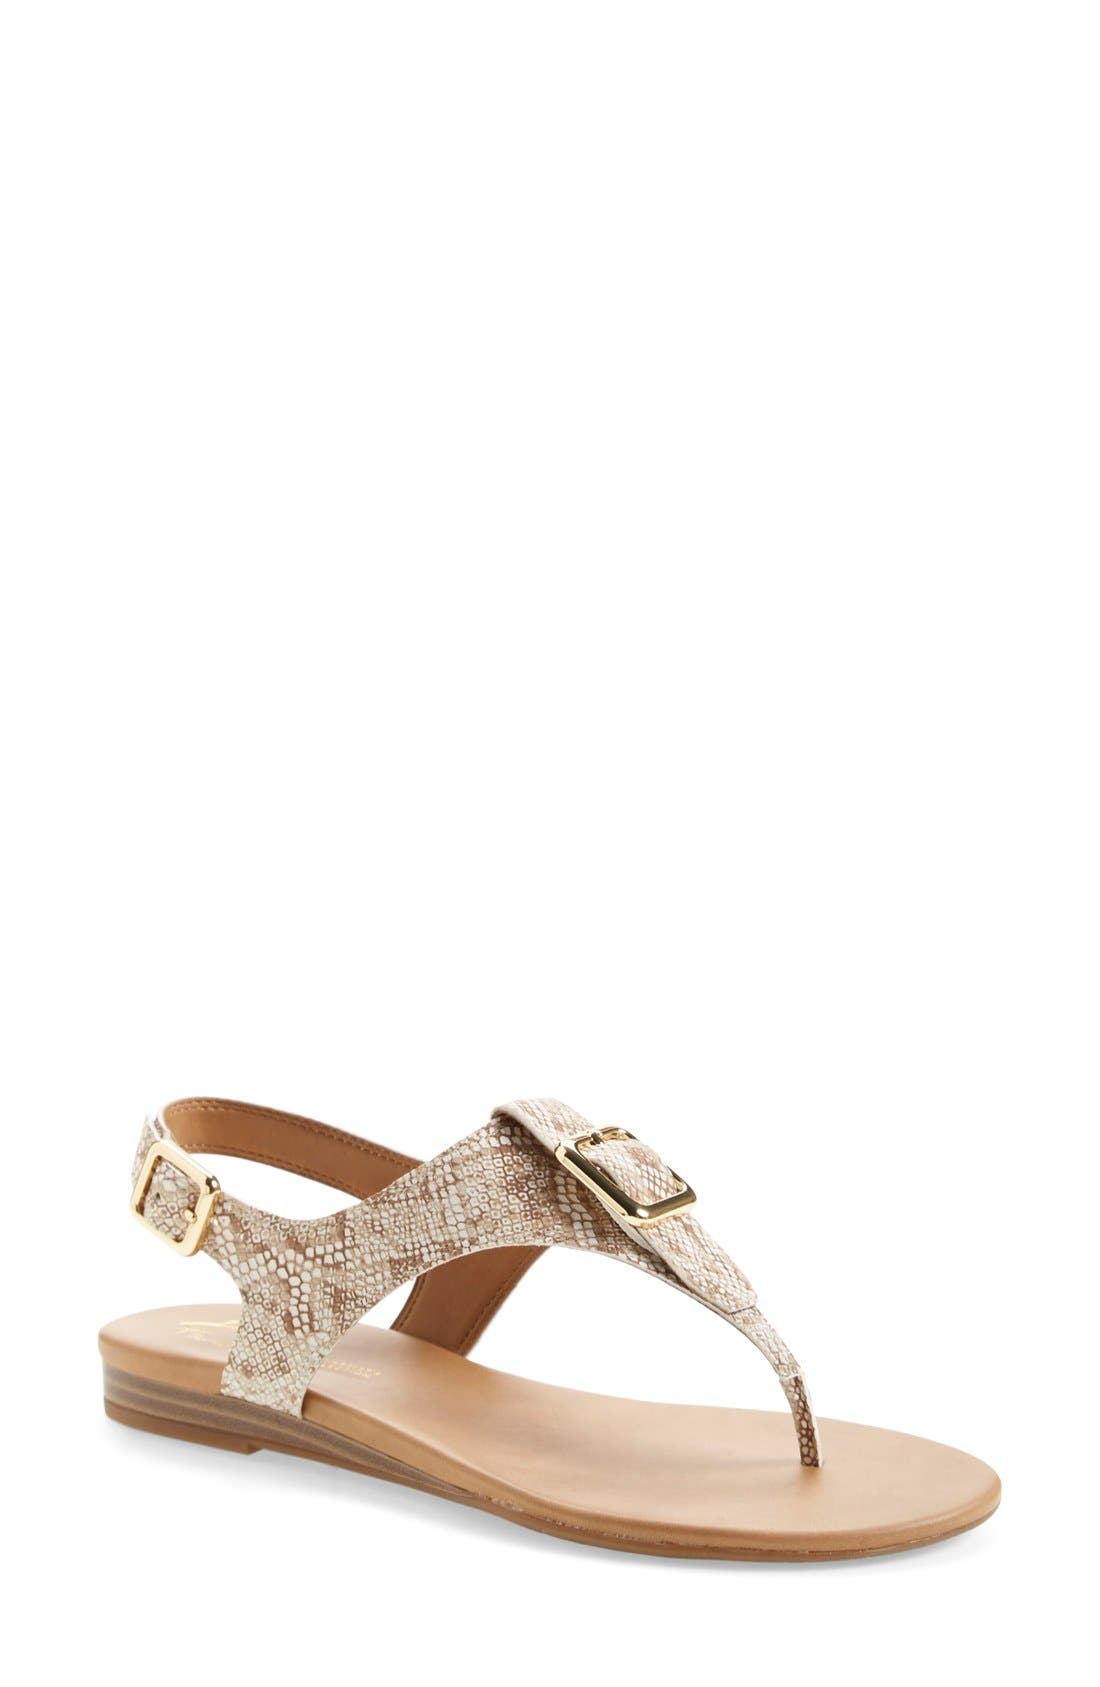 'Gita' Thong Sandal,                         Main,                         color, Natural Snake